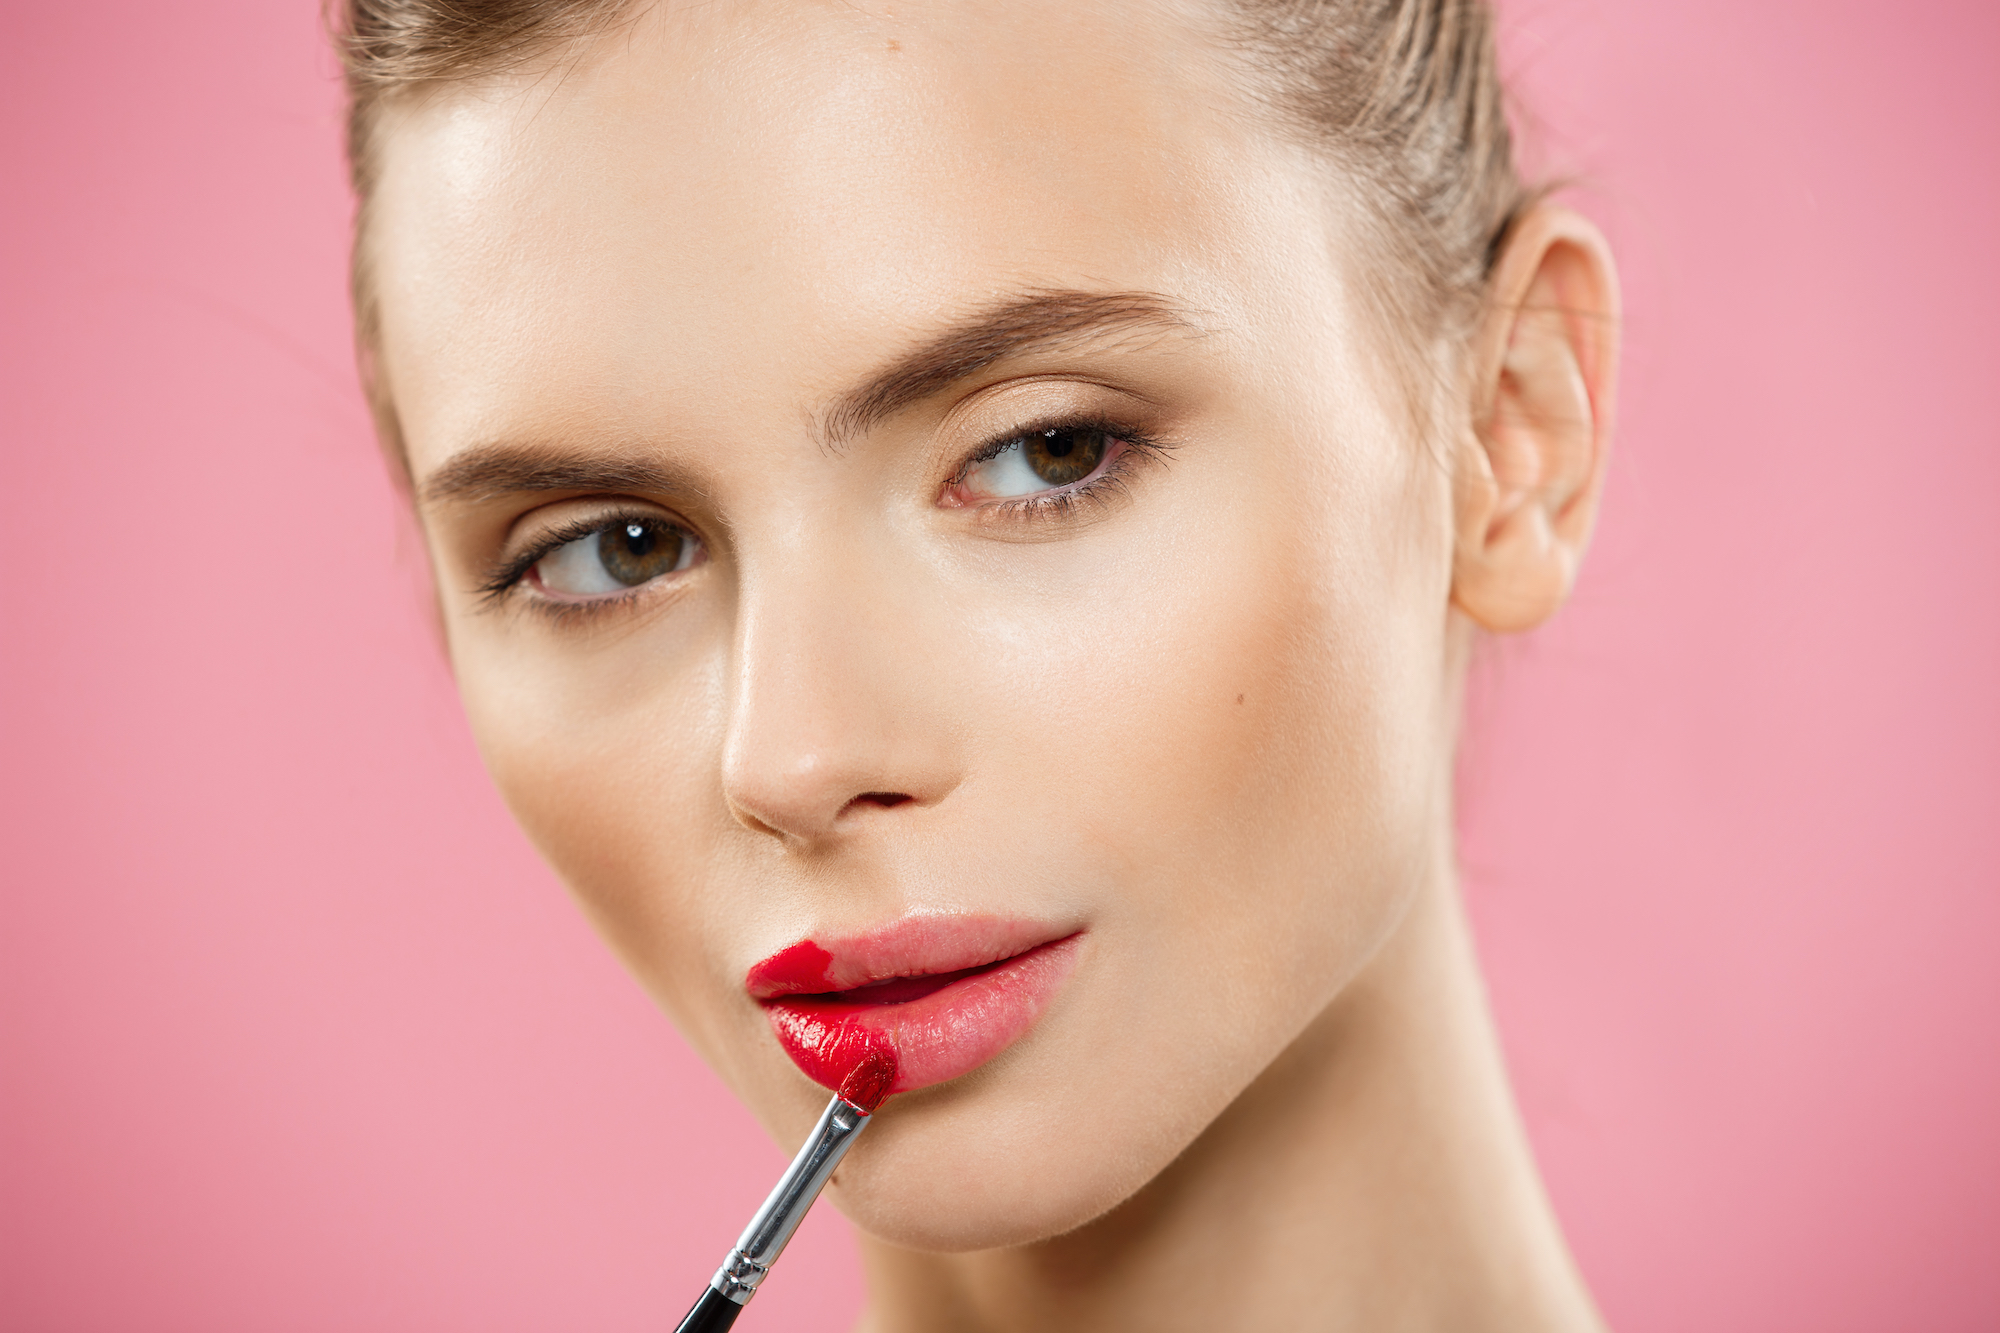 Beauty Concept – Woman applying red lipstick with pink studio background. Beautiful girl makes makeup.